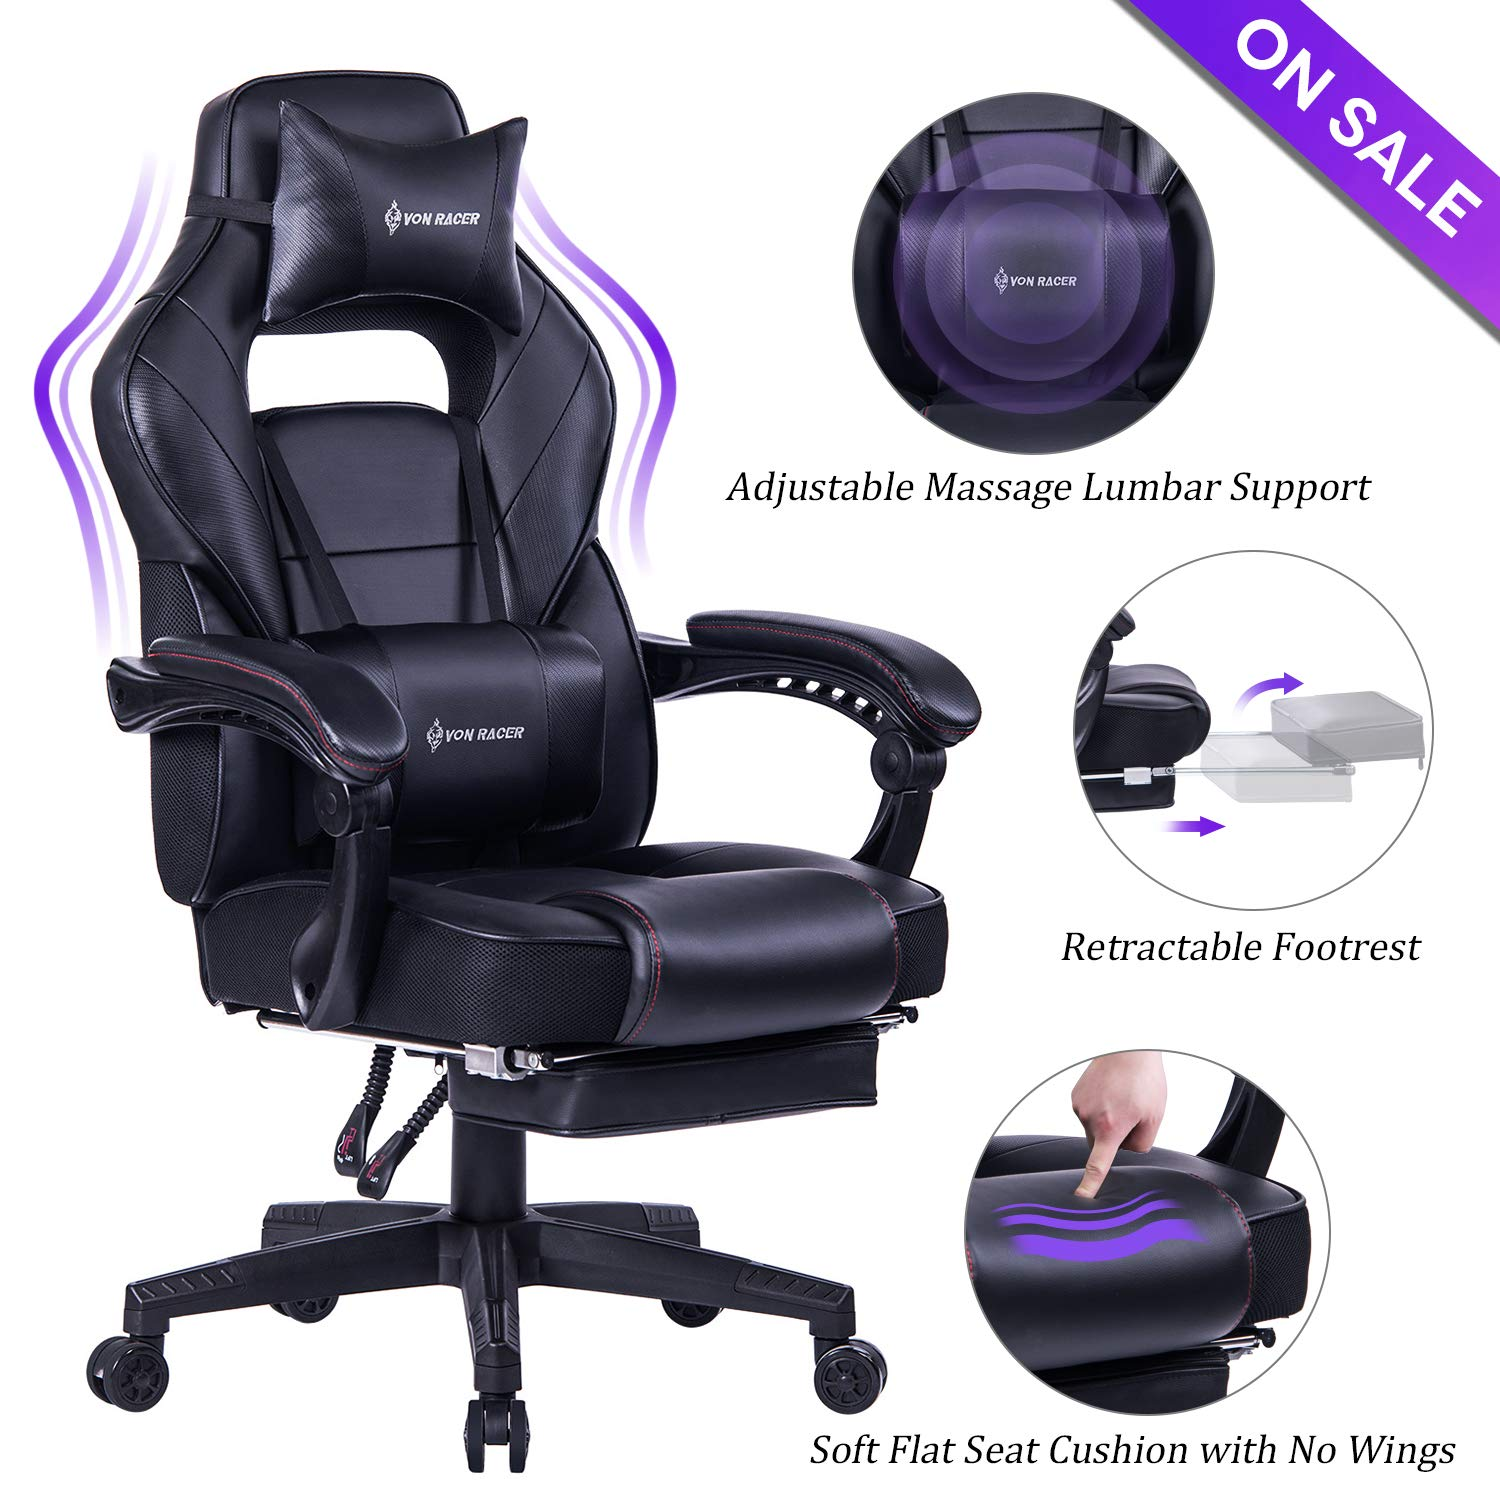 VON RACER Massage Reclining Gaming Chair - Ergonomic High-Back Racing Computer Desk Office Chair with Retractable Footrest and Adjustable Lumbar Cushion (Black) by VON RACER